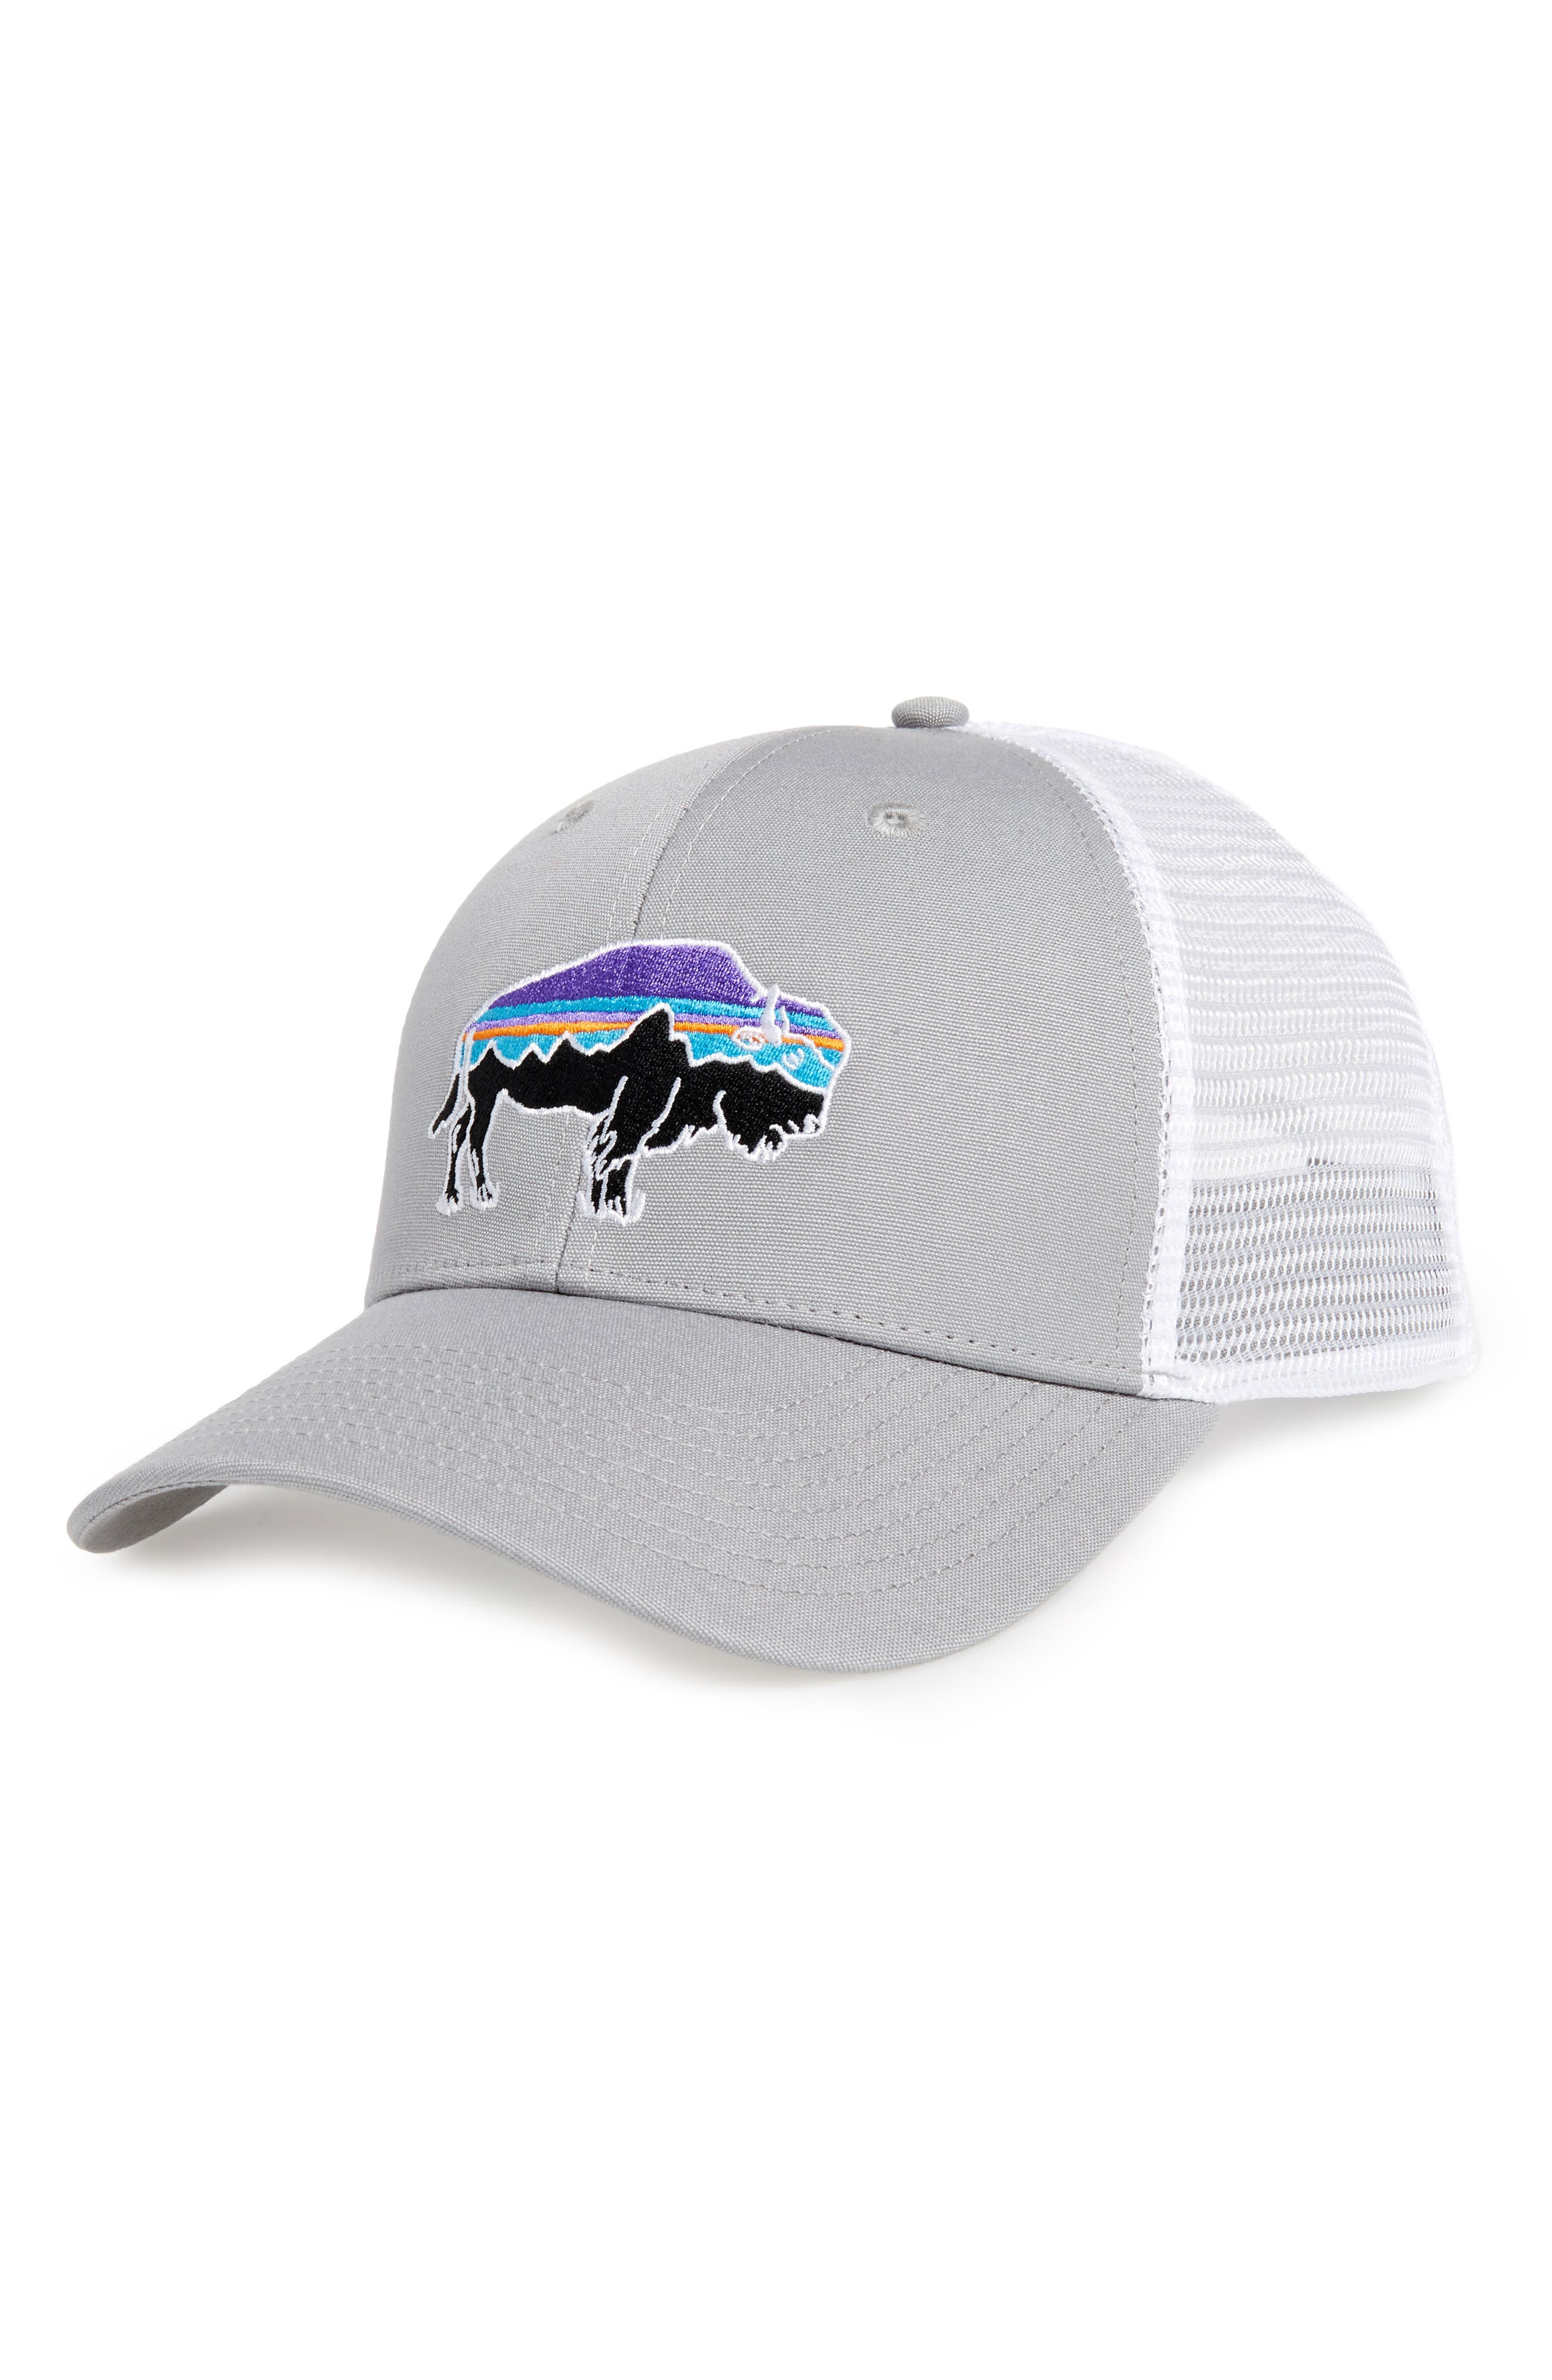 PATAGONIA,                             'Fitz Roy Bison' Trucker Hat,                             Main thumbnail 1, color,                             021